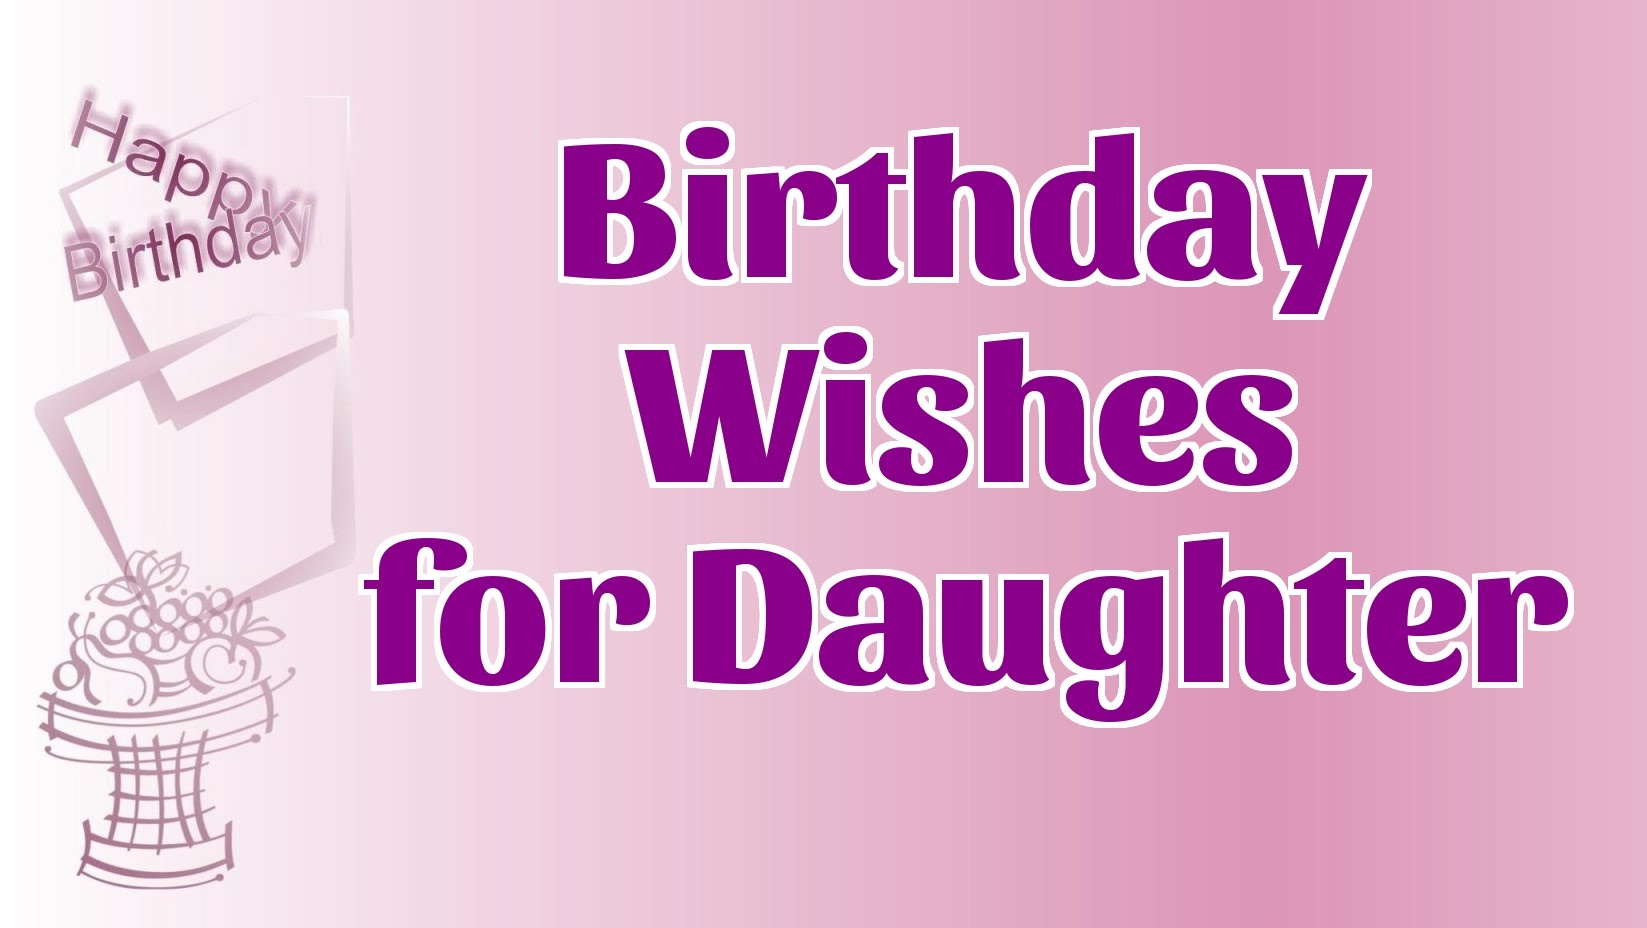 21st birthday card messages for daughter ; maxresdefault